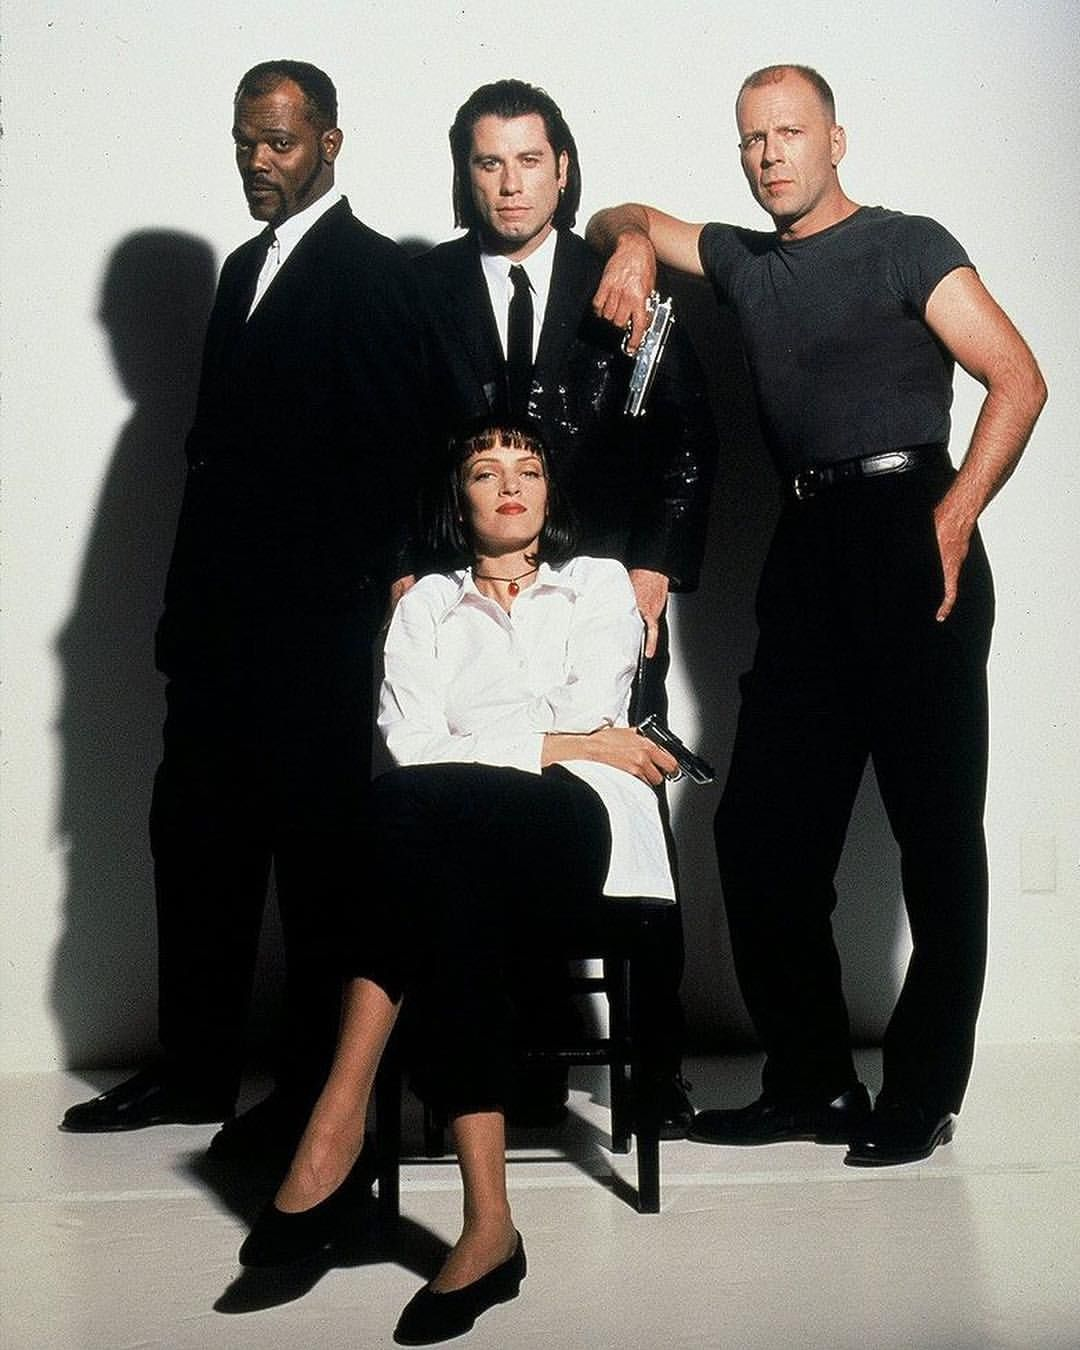 The Cast Of Pulp Fiction 1994 Quentin Tarantino Pulp Fiction Pulp Fiction Director Tarantino Pulp Fiction